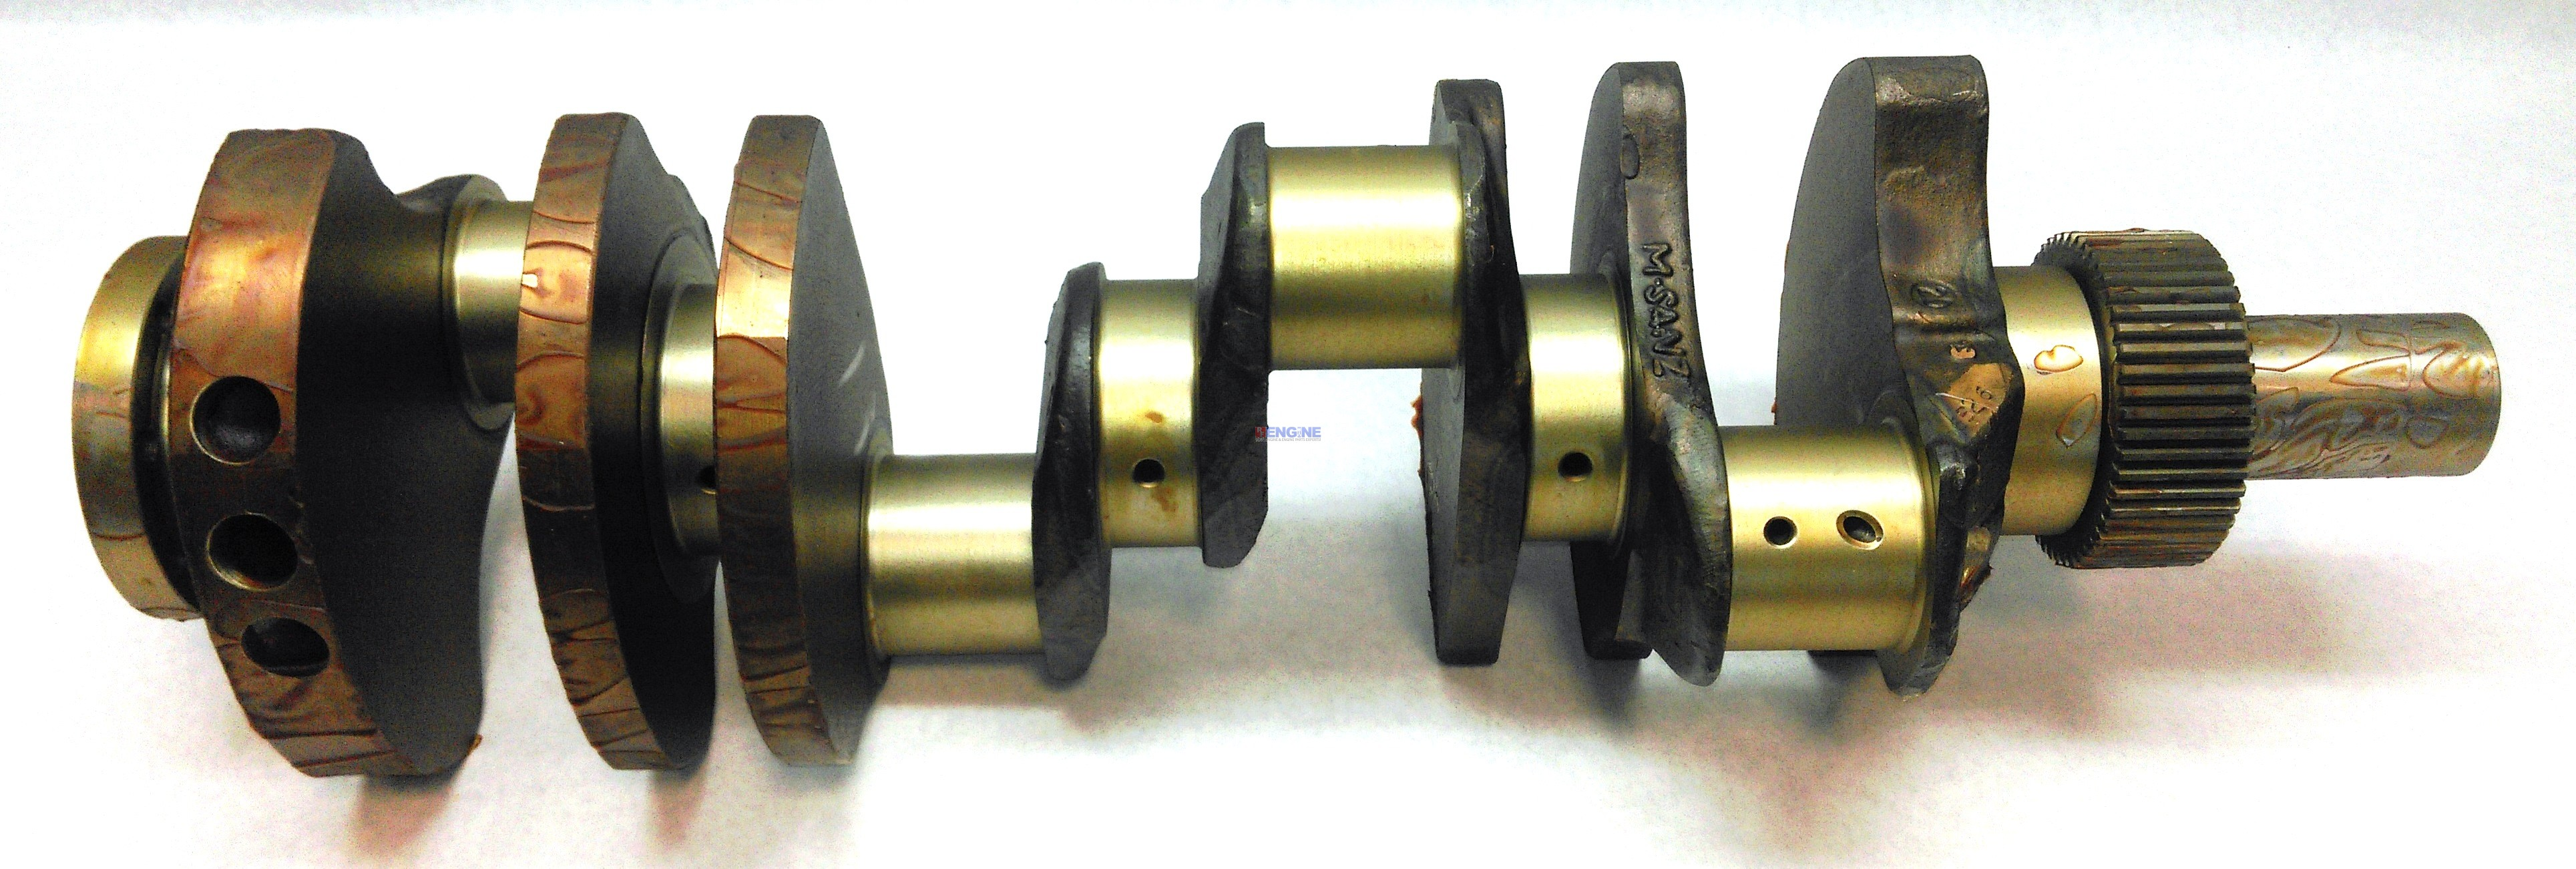 New Forged Crankshaft Caterpillar 3208 Replaces 2w0085